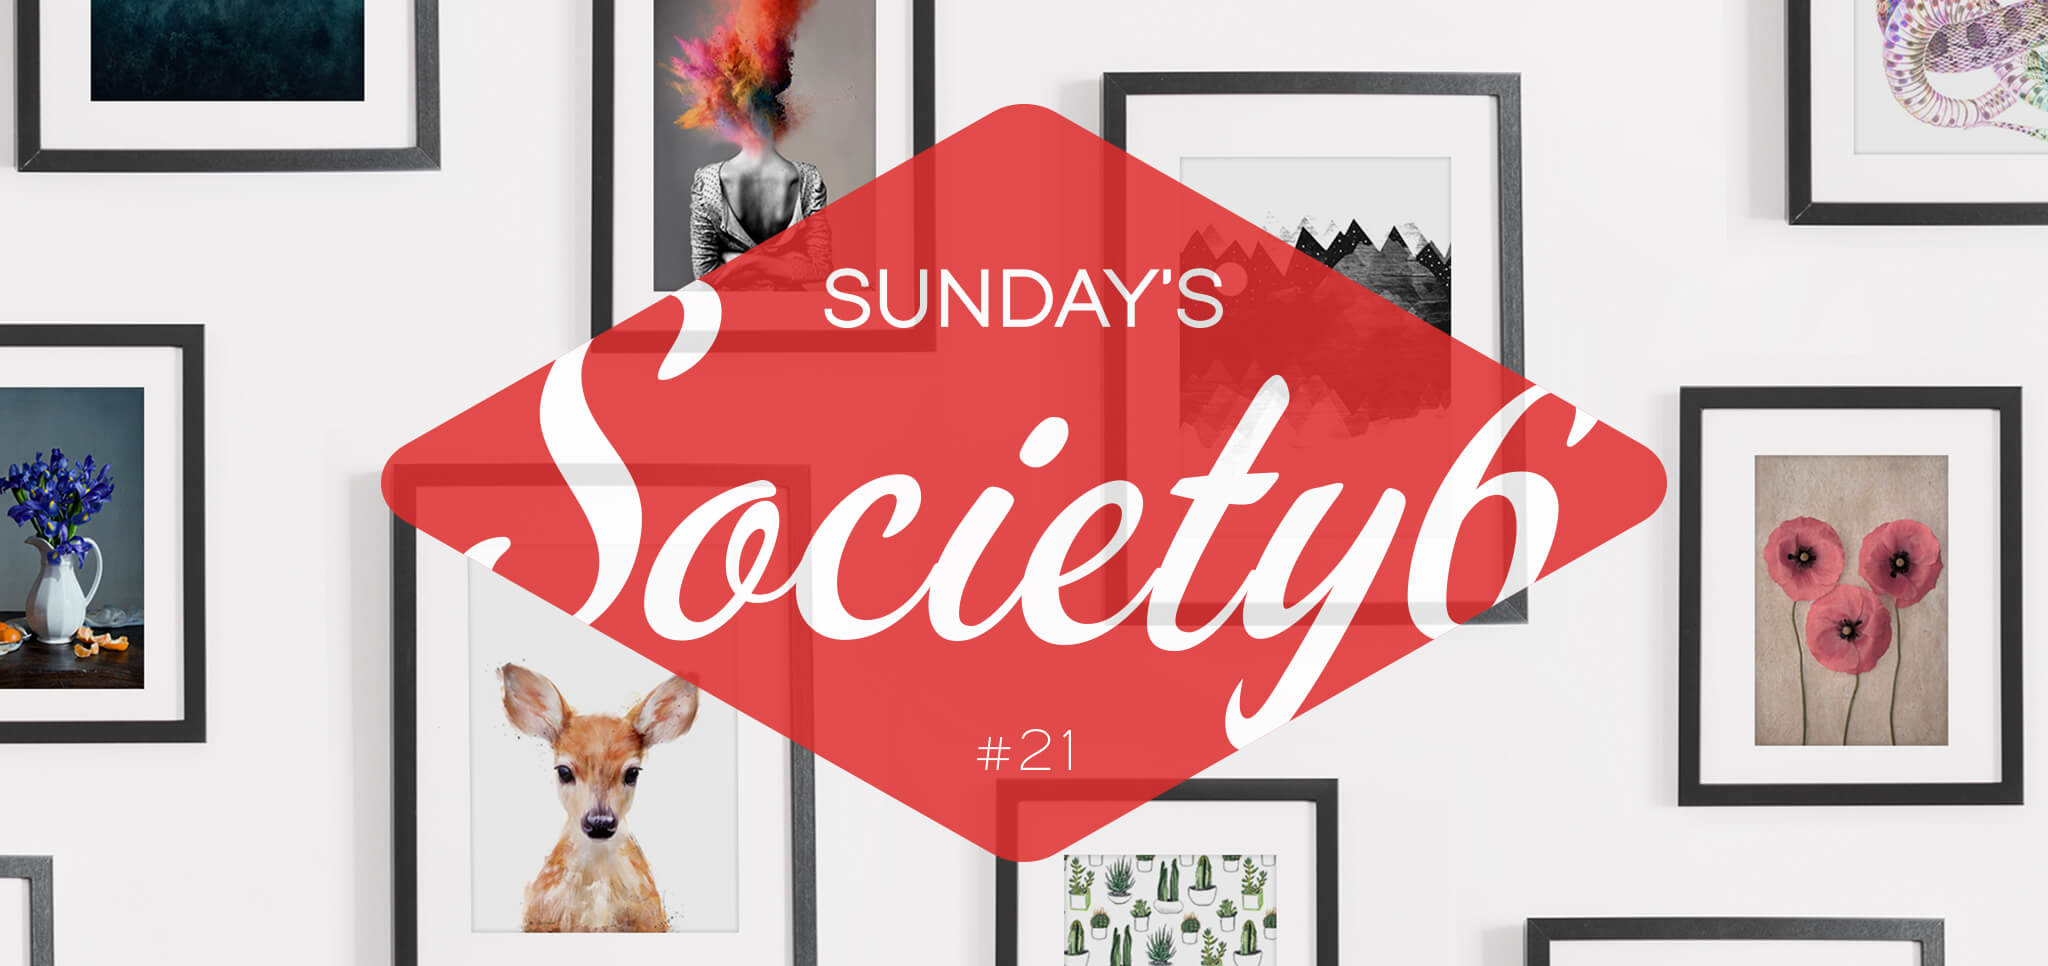 Sunday's Society6 – #21